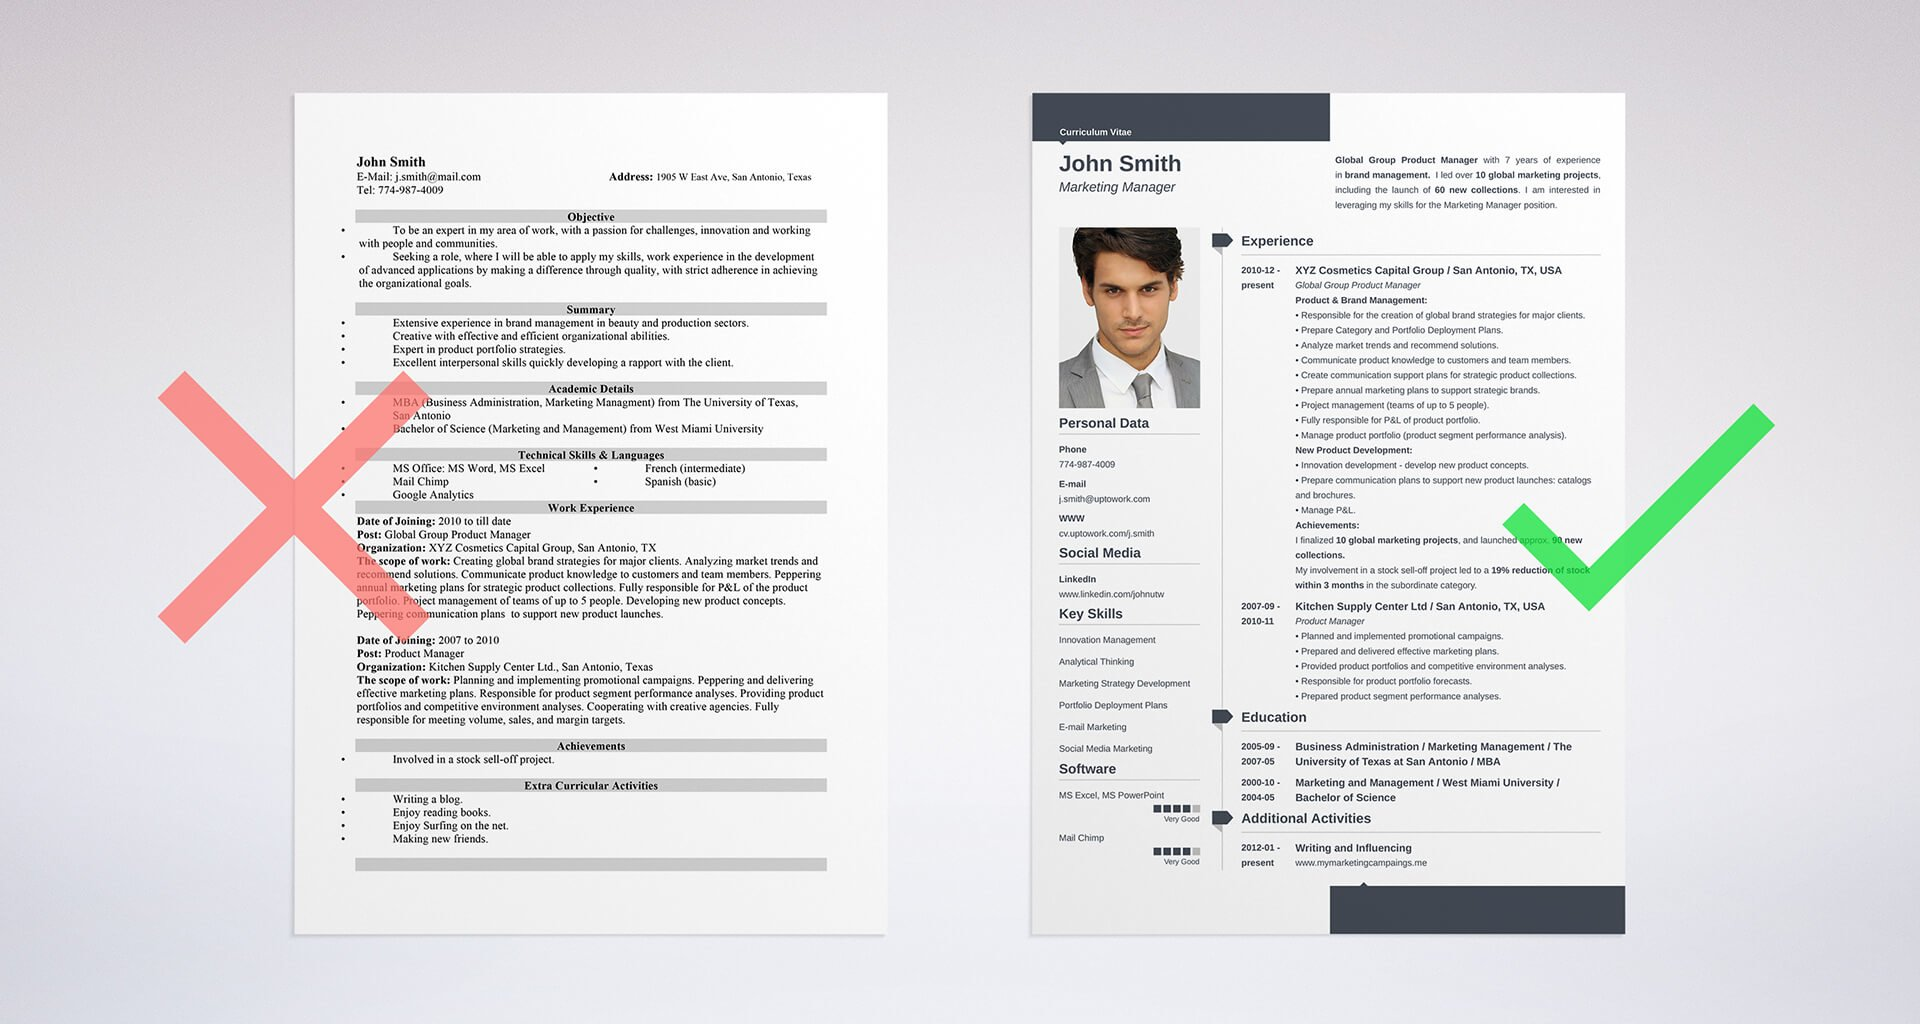 30 best examples of what skills to put on a resume proven tips - How To Do Resume For Job